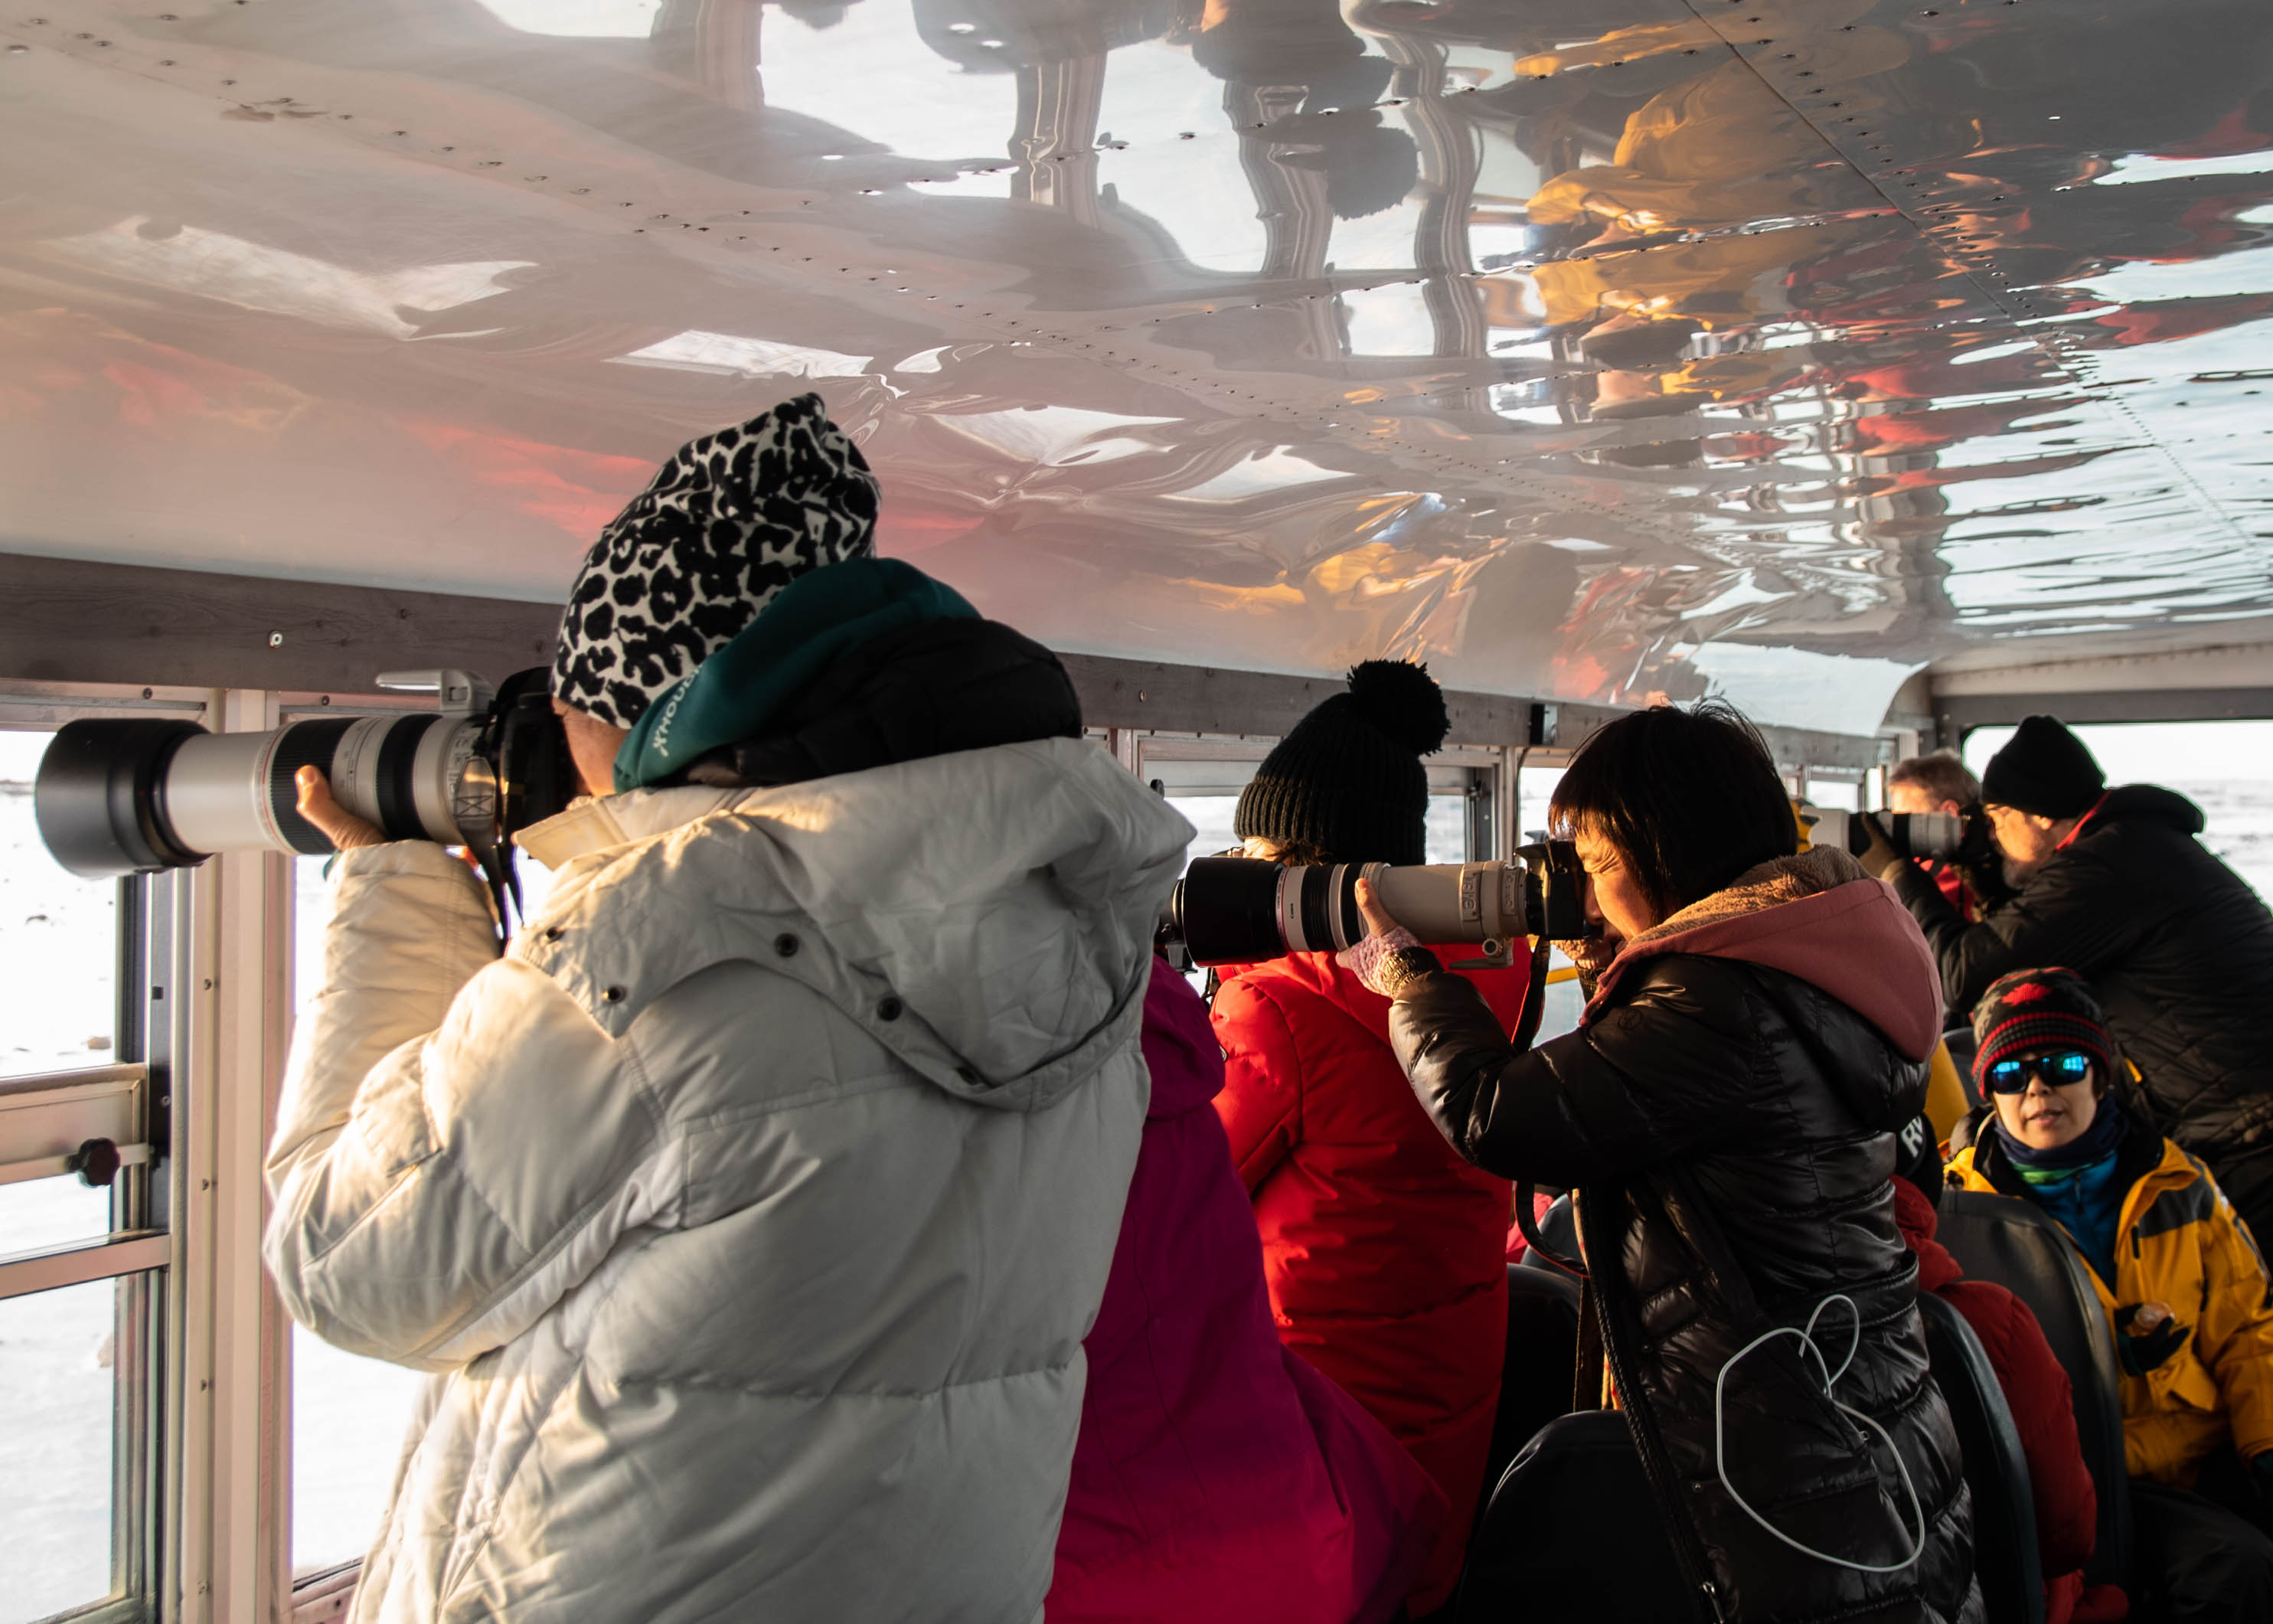 Guests lining up to take photos of polar bears.